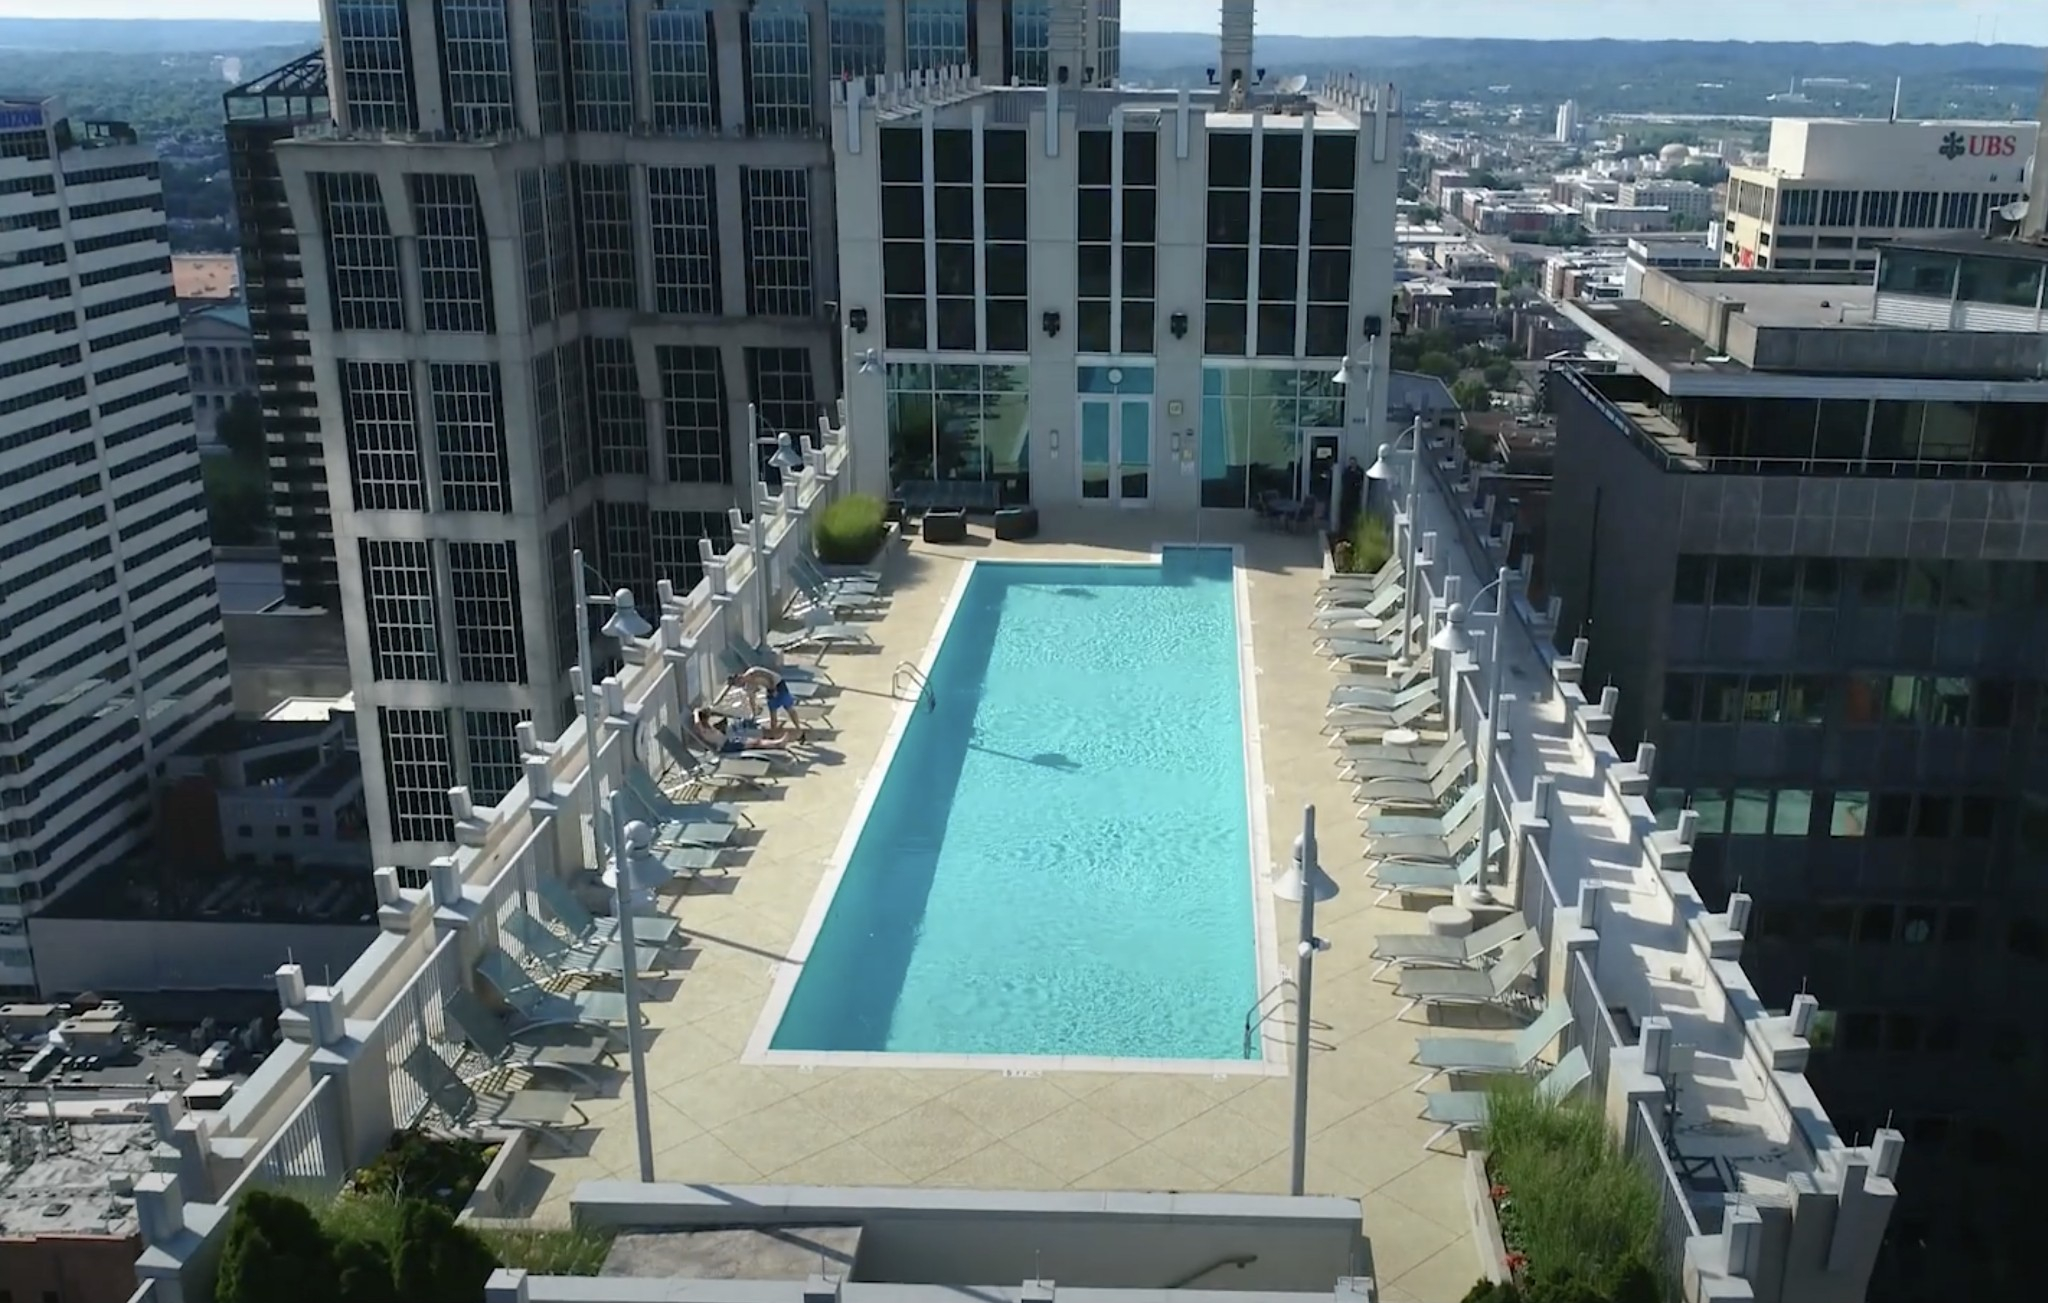 Aerial view of Viridian pool in downtown Nashville